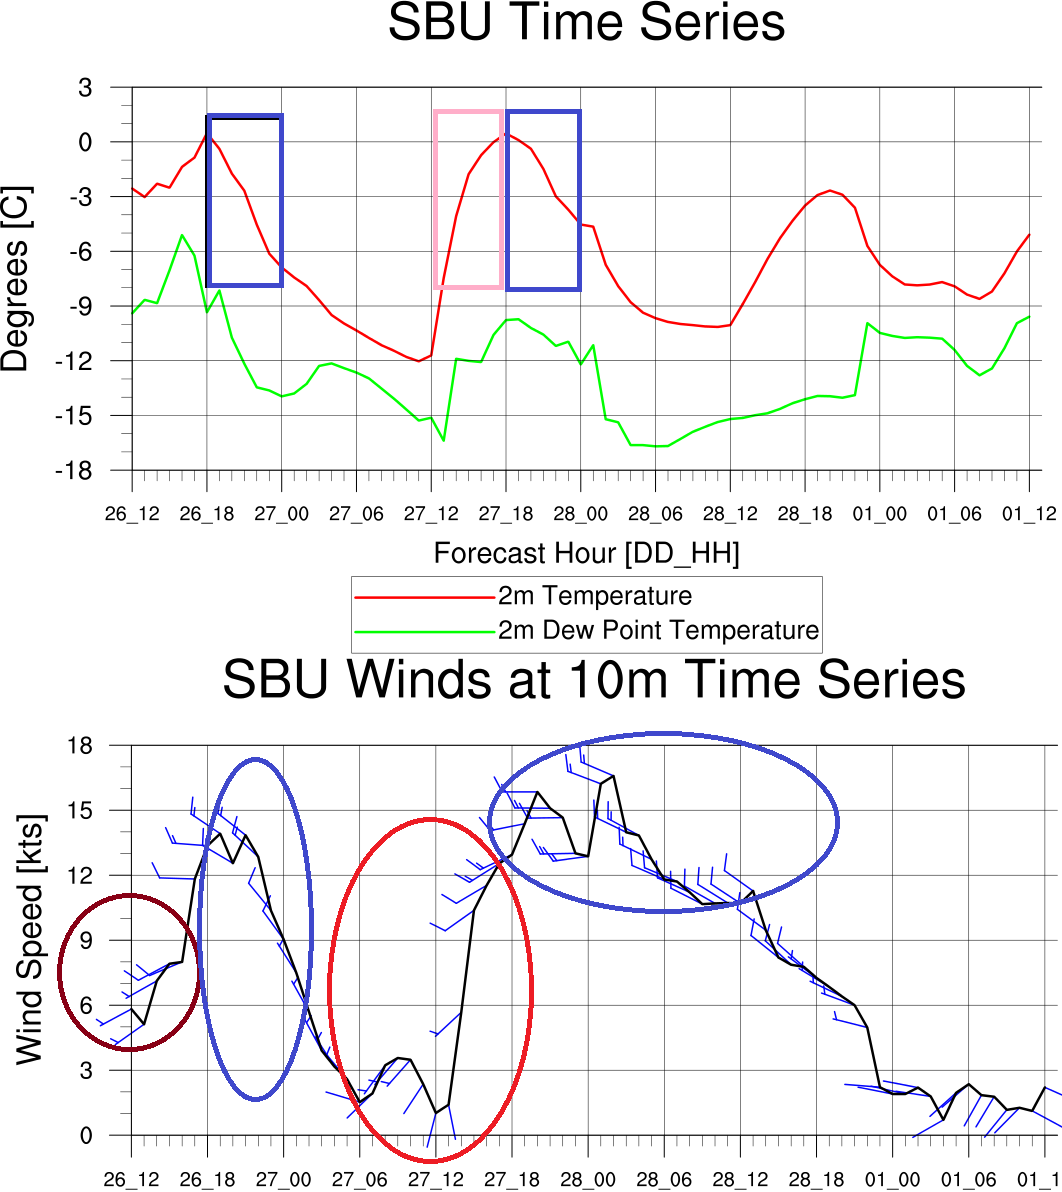 sbu wrf 12z gfs 26 feb model time series of temperature dew point temperature on the top and wind speed and direction indicated by the barbs pointing into